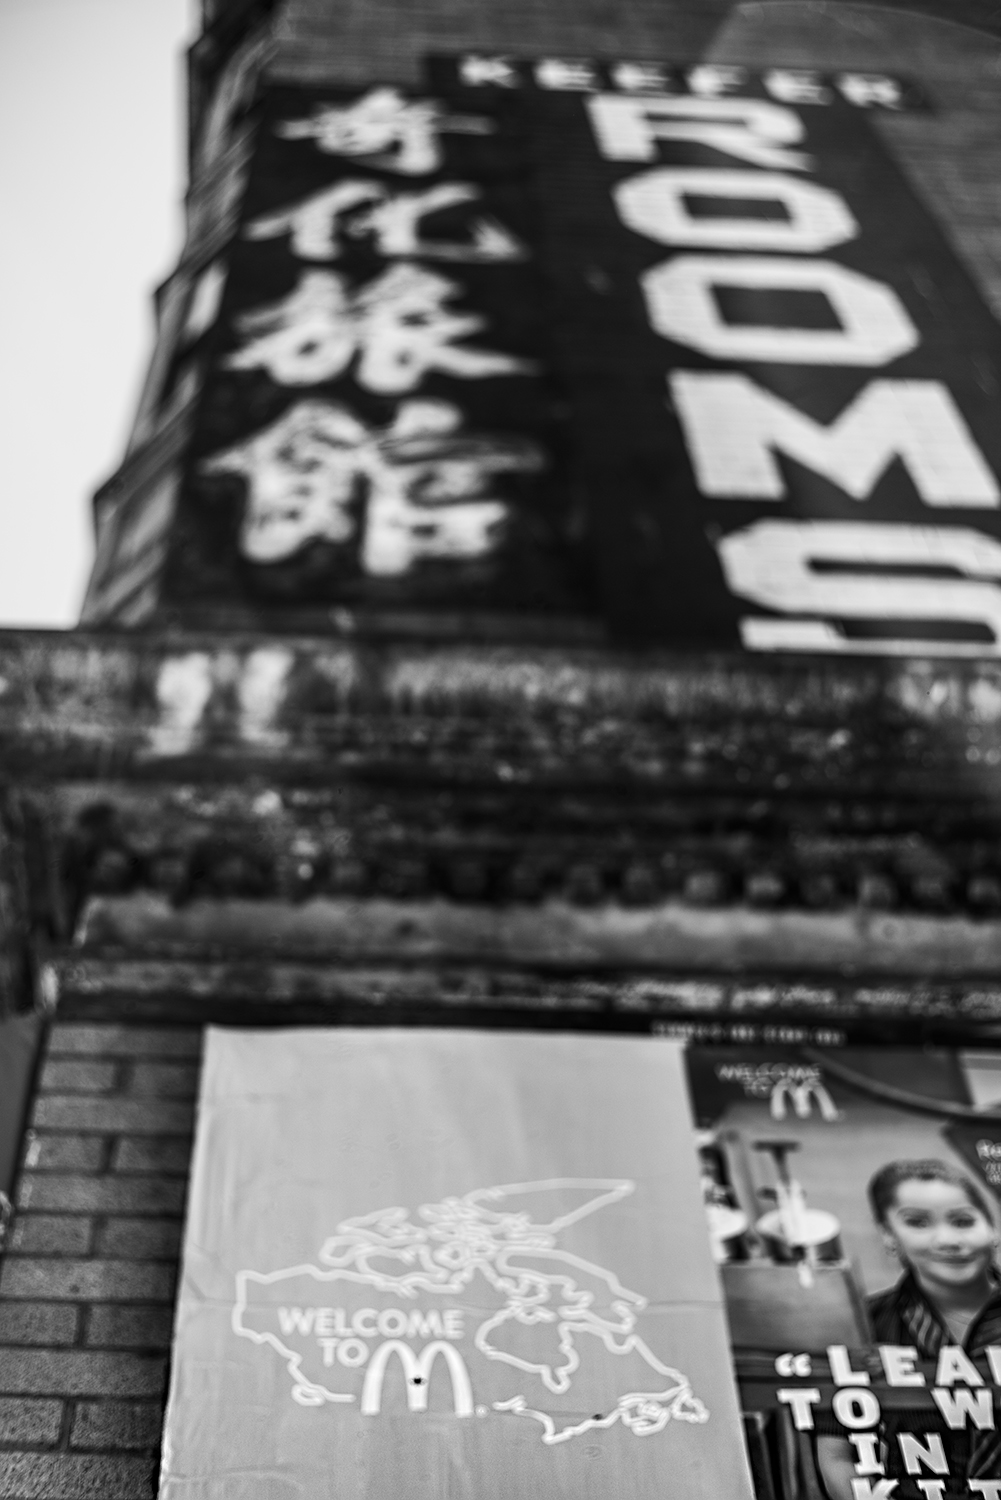 WELCOME TO M. Old Chinatown, Vancouver BC, 2015.